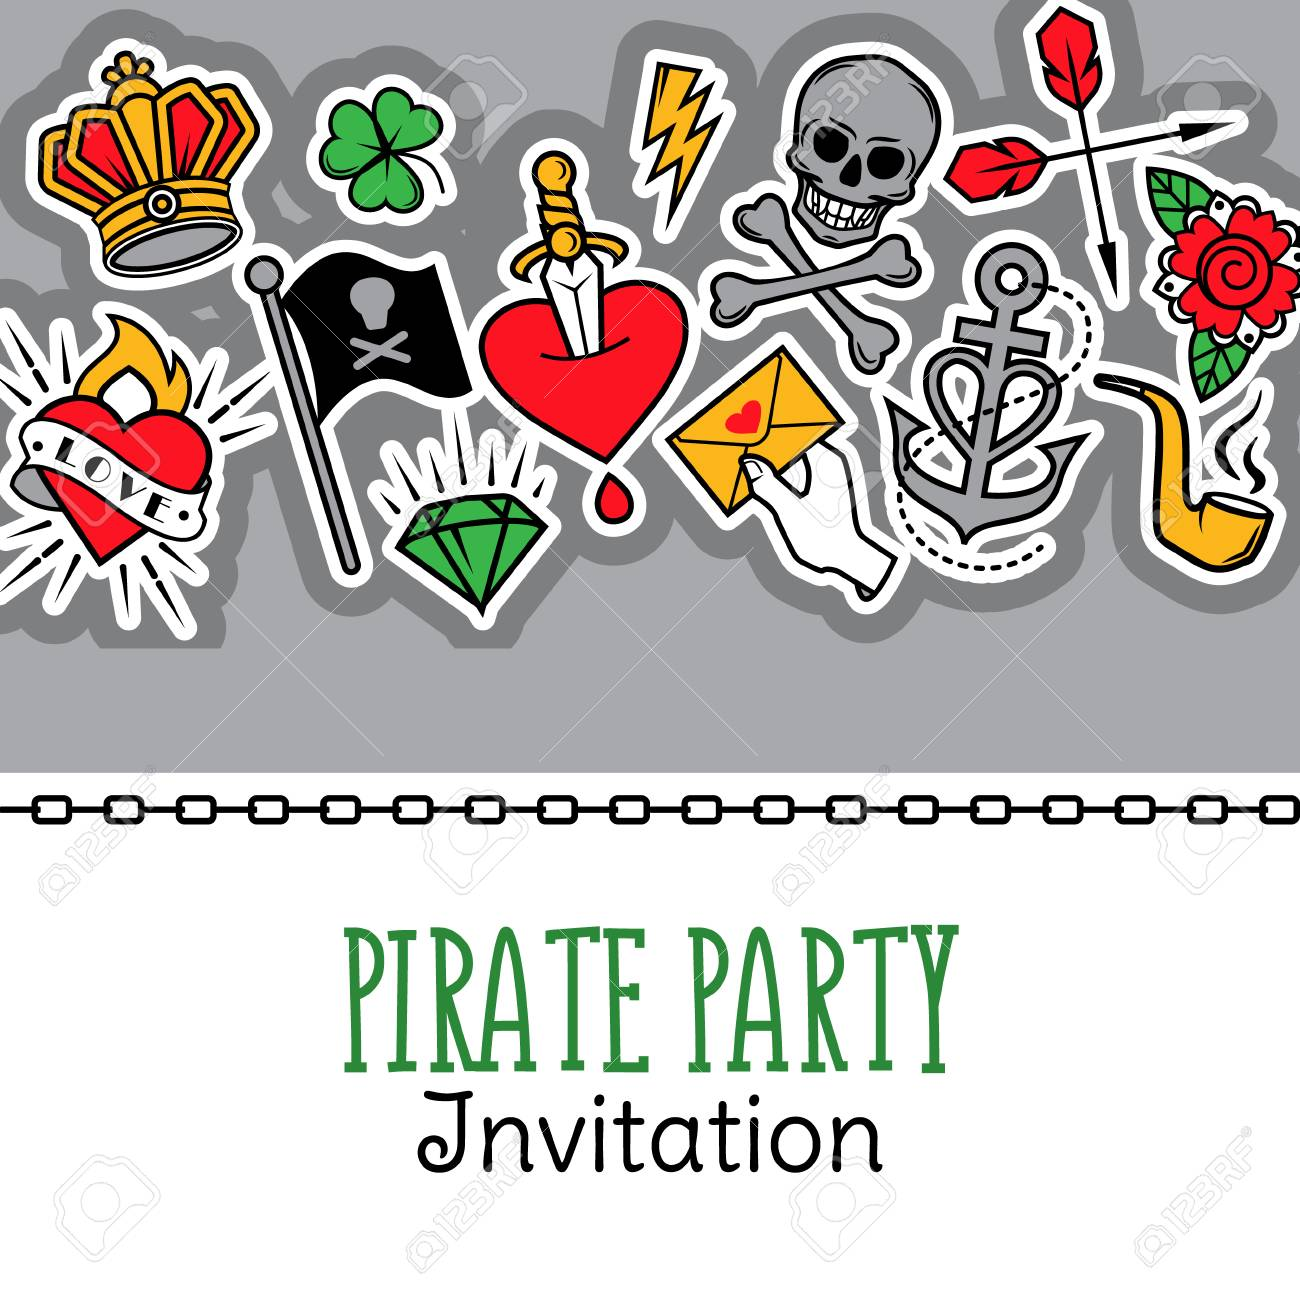 Old school tattoo and pirate life composition vector illustration old school tattoo and pirate life composition vector illustration for pirate party invitation and other stopboris Image collections